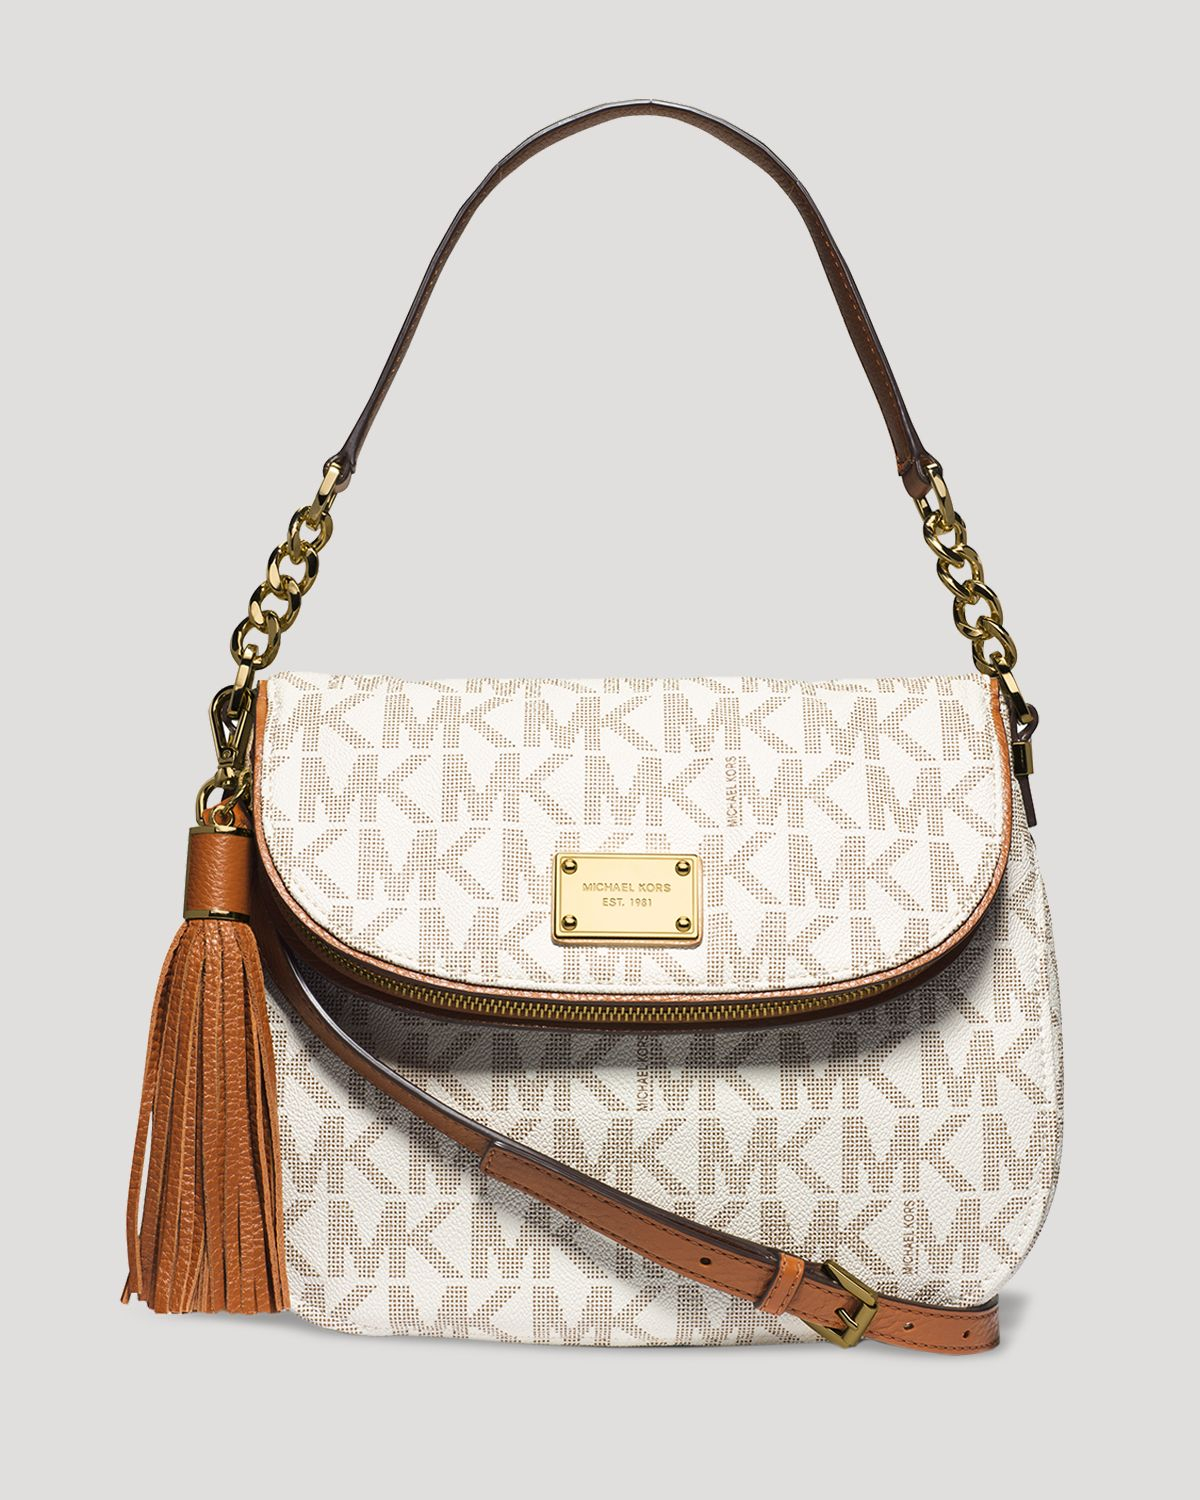 5510b1c34a2e purchase michael kors medium bedford convertible crossbody 50216 12dfc;  cheapest lyst michael michael kors shoulder bag medium bedford tassel 41845  fb52d